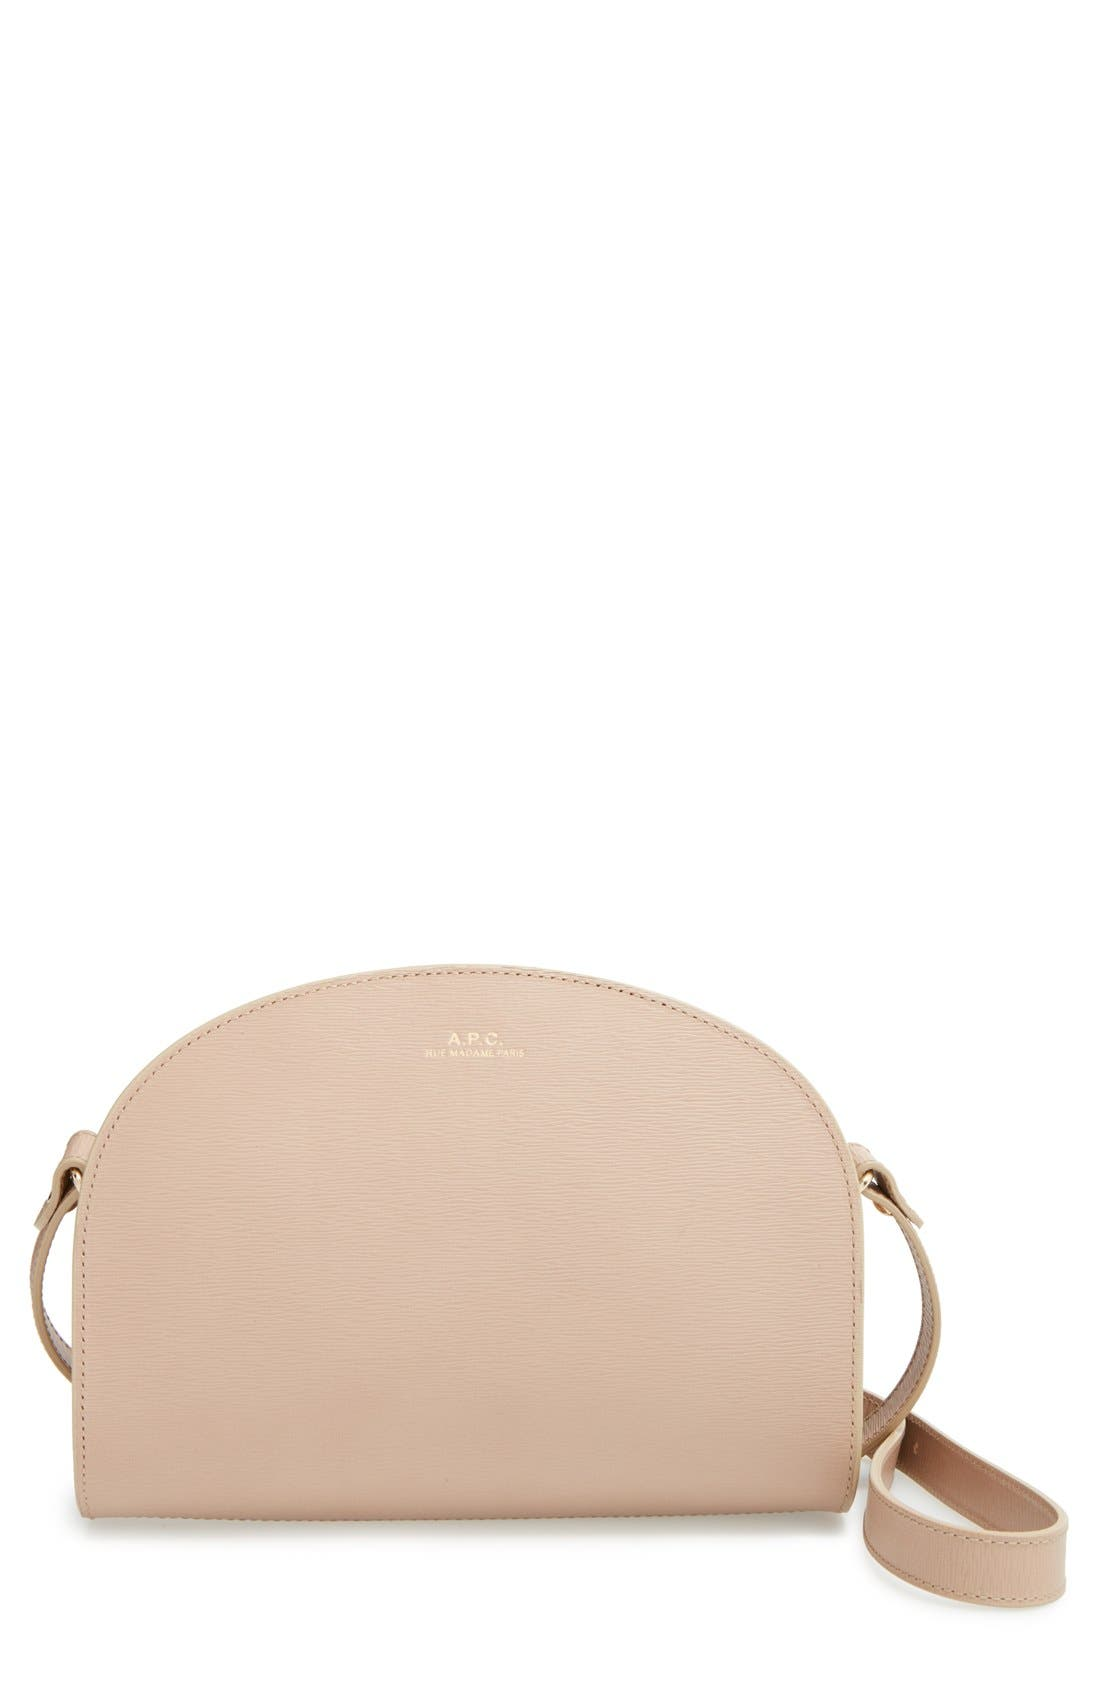 A.P.C.,                             'Demi Lune' Embossed Leather Crossbody Bag,                             Main thumbnail 1, color,                             250